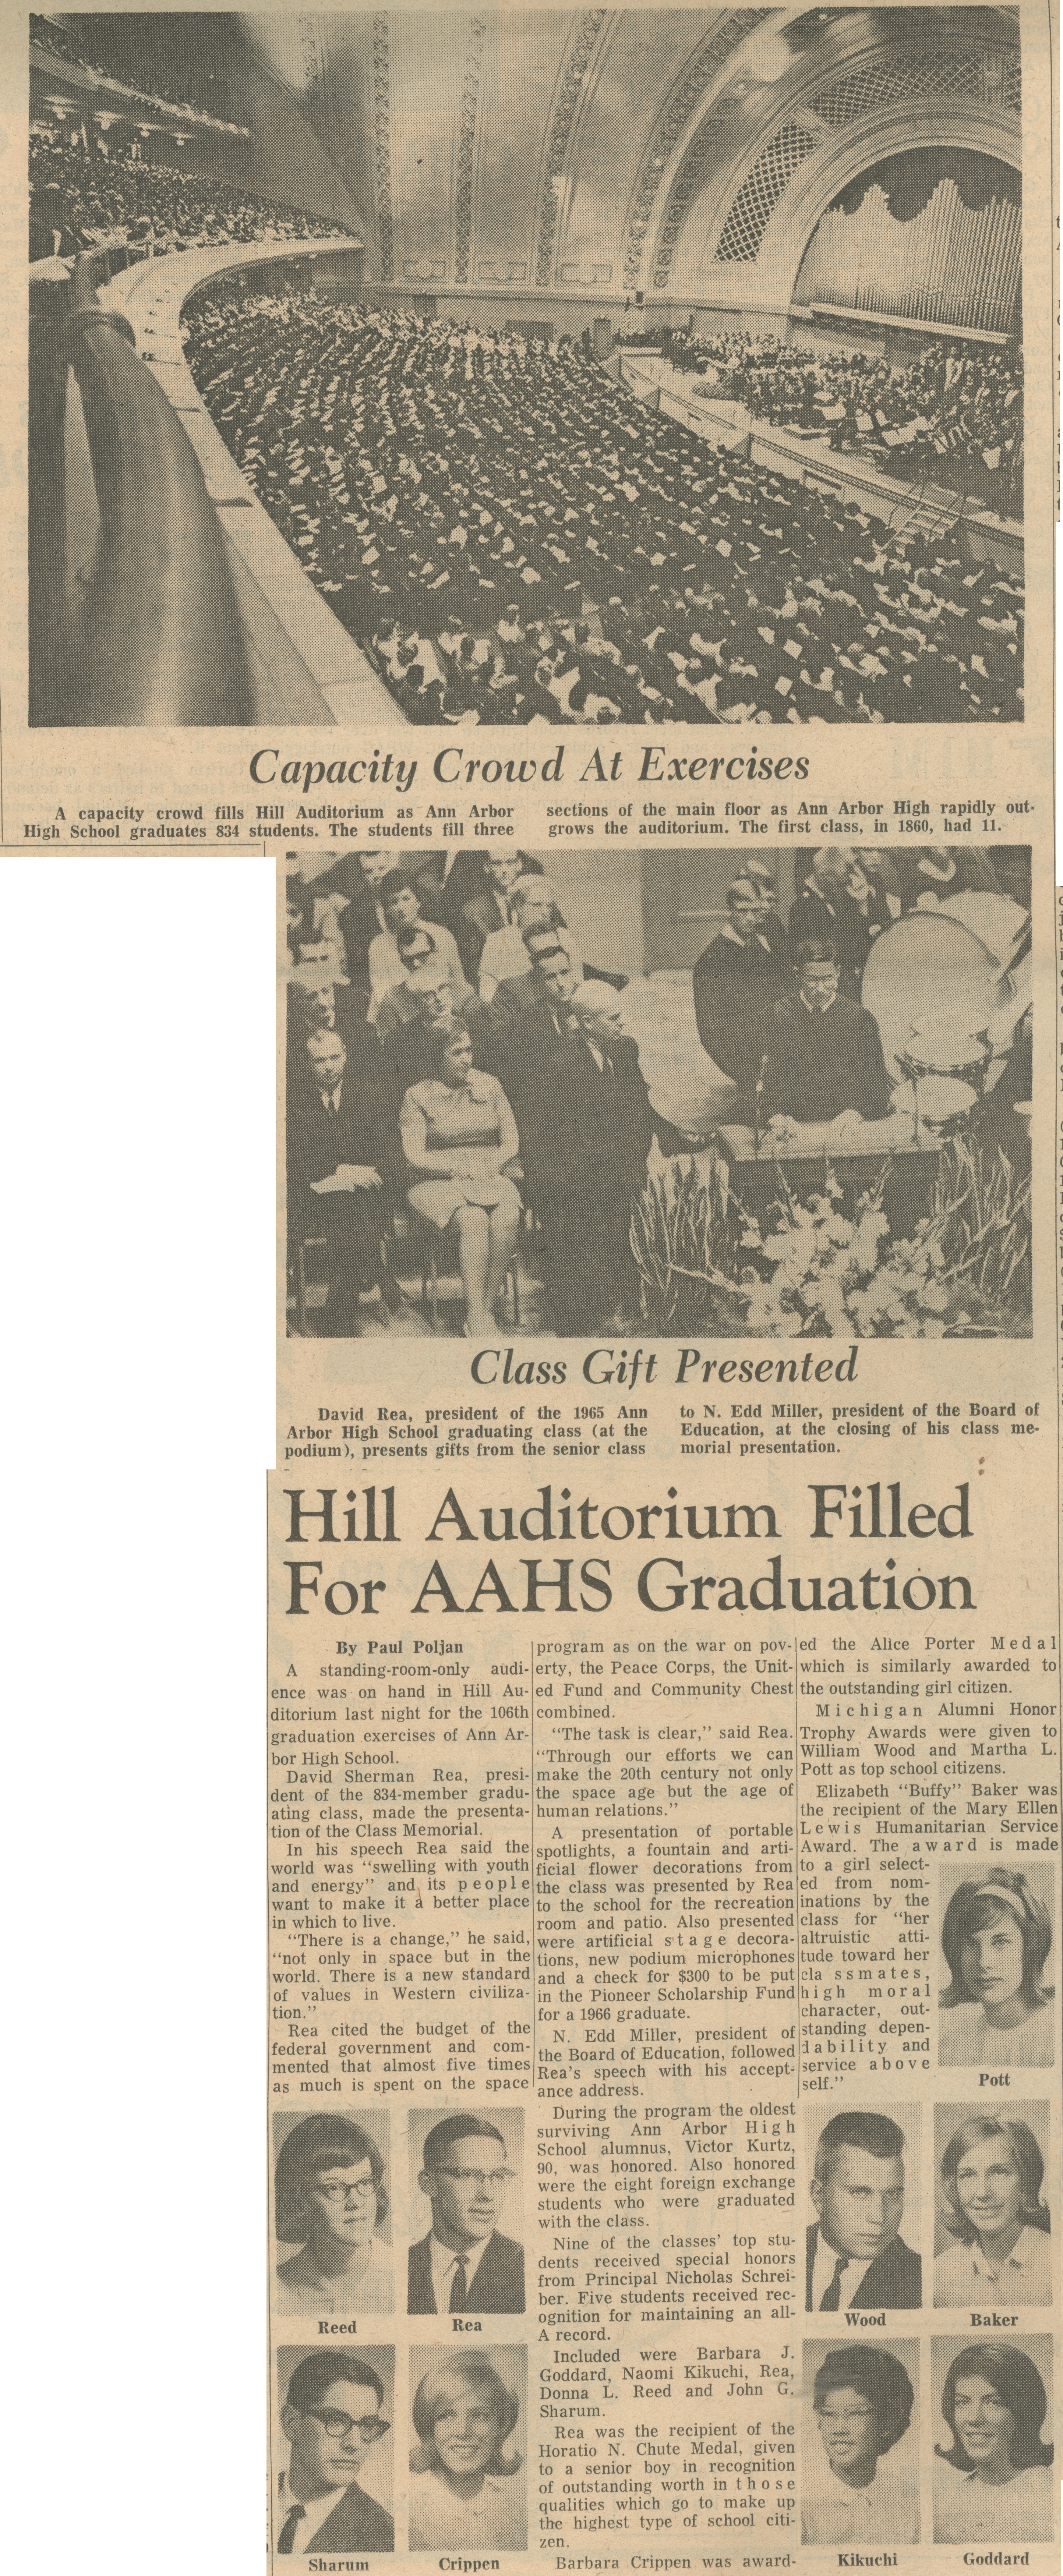 Hill Auditorium Filled For AAHS Graduation image